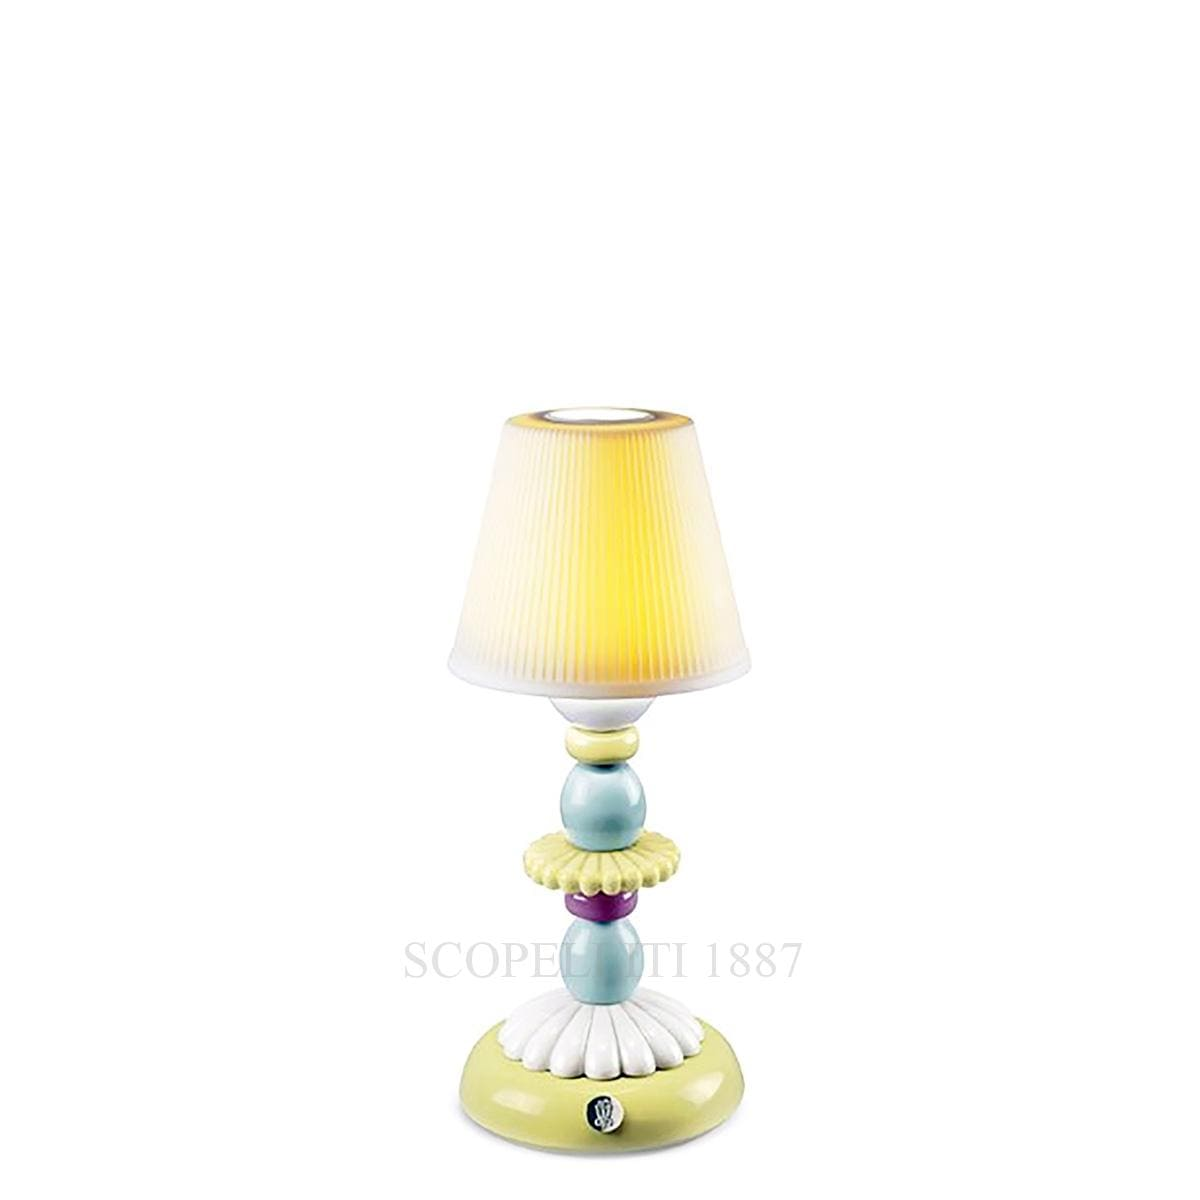 lladro lotus firefly designer table lamp green & blue